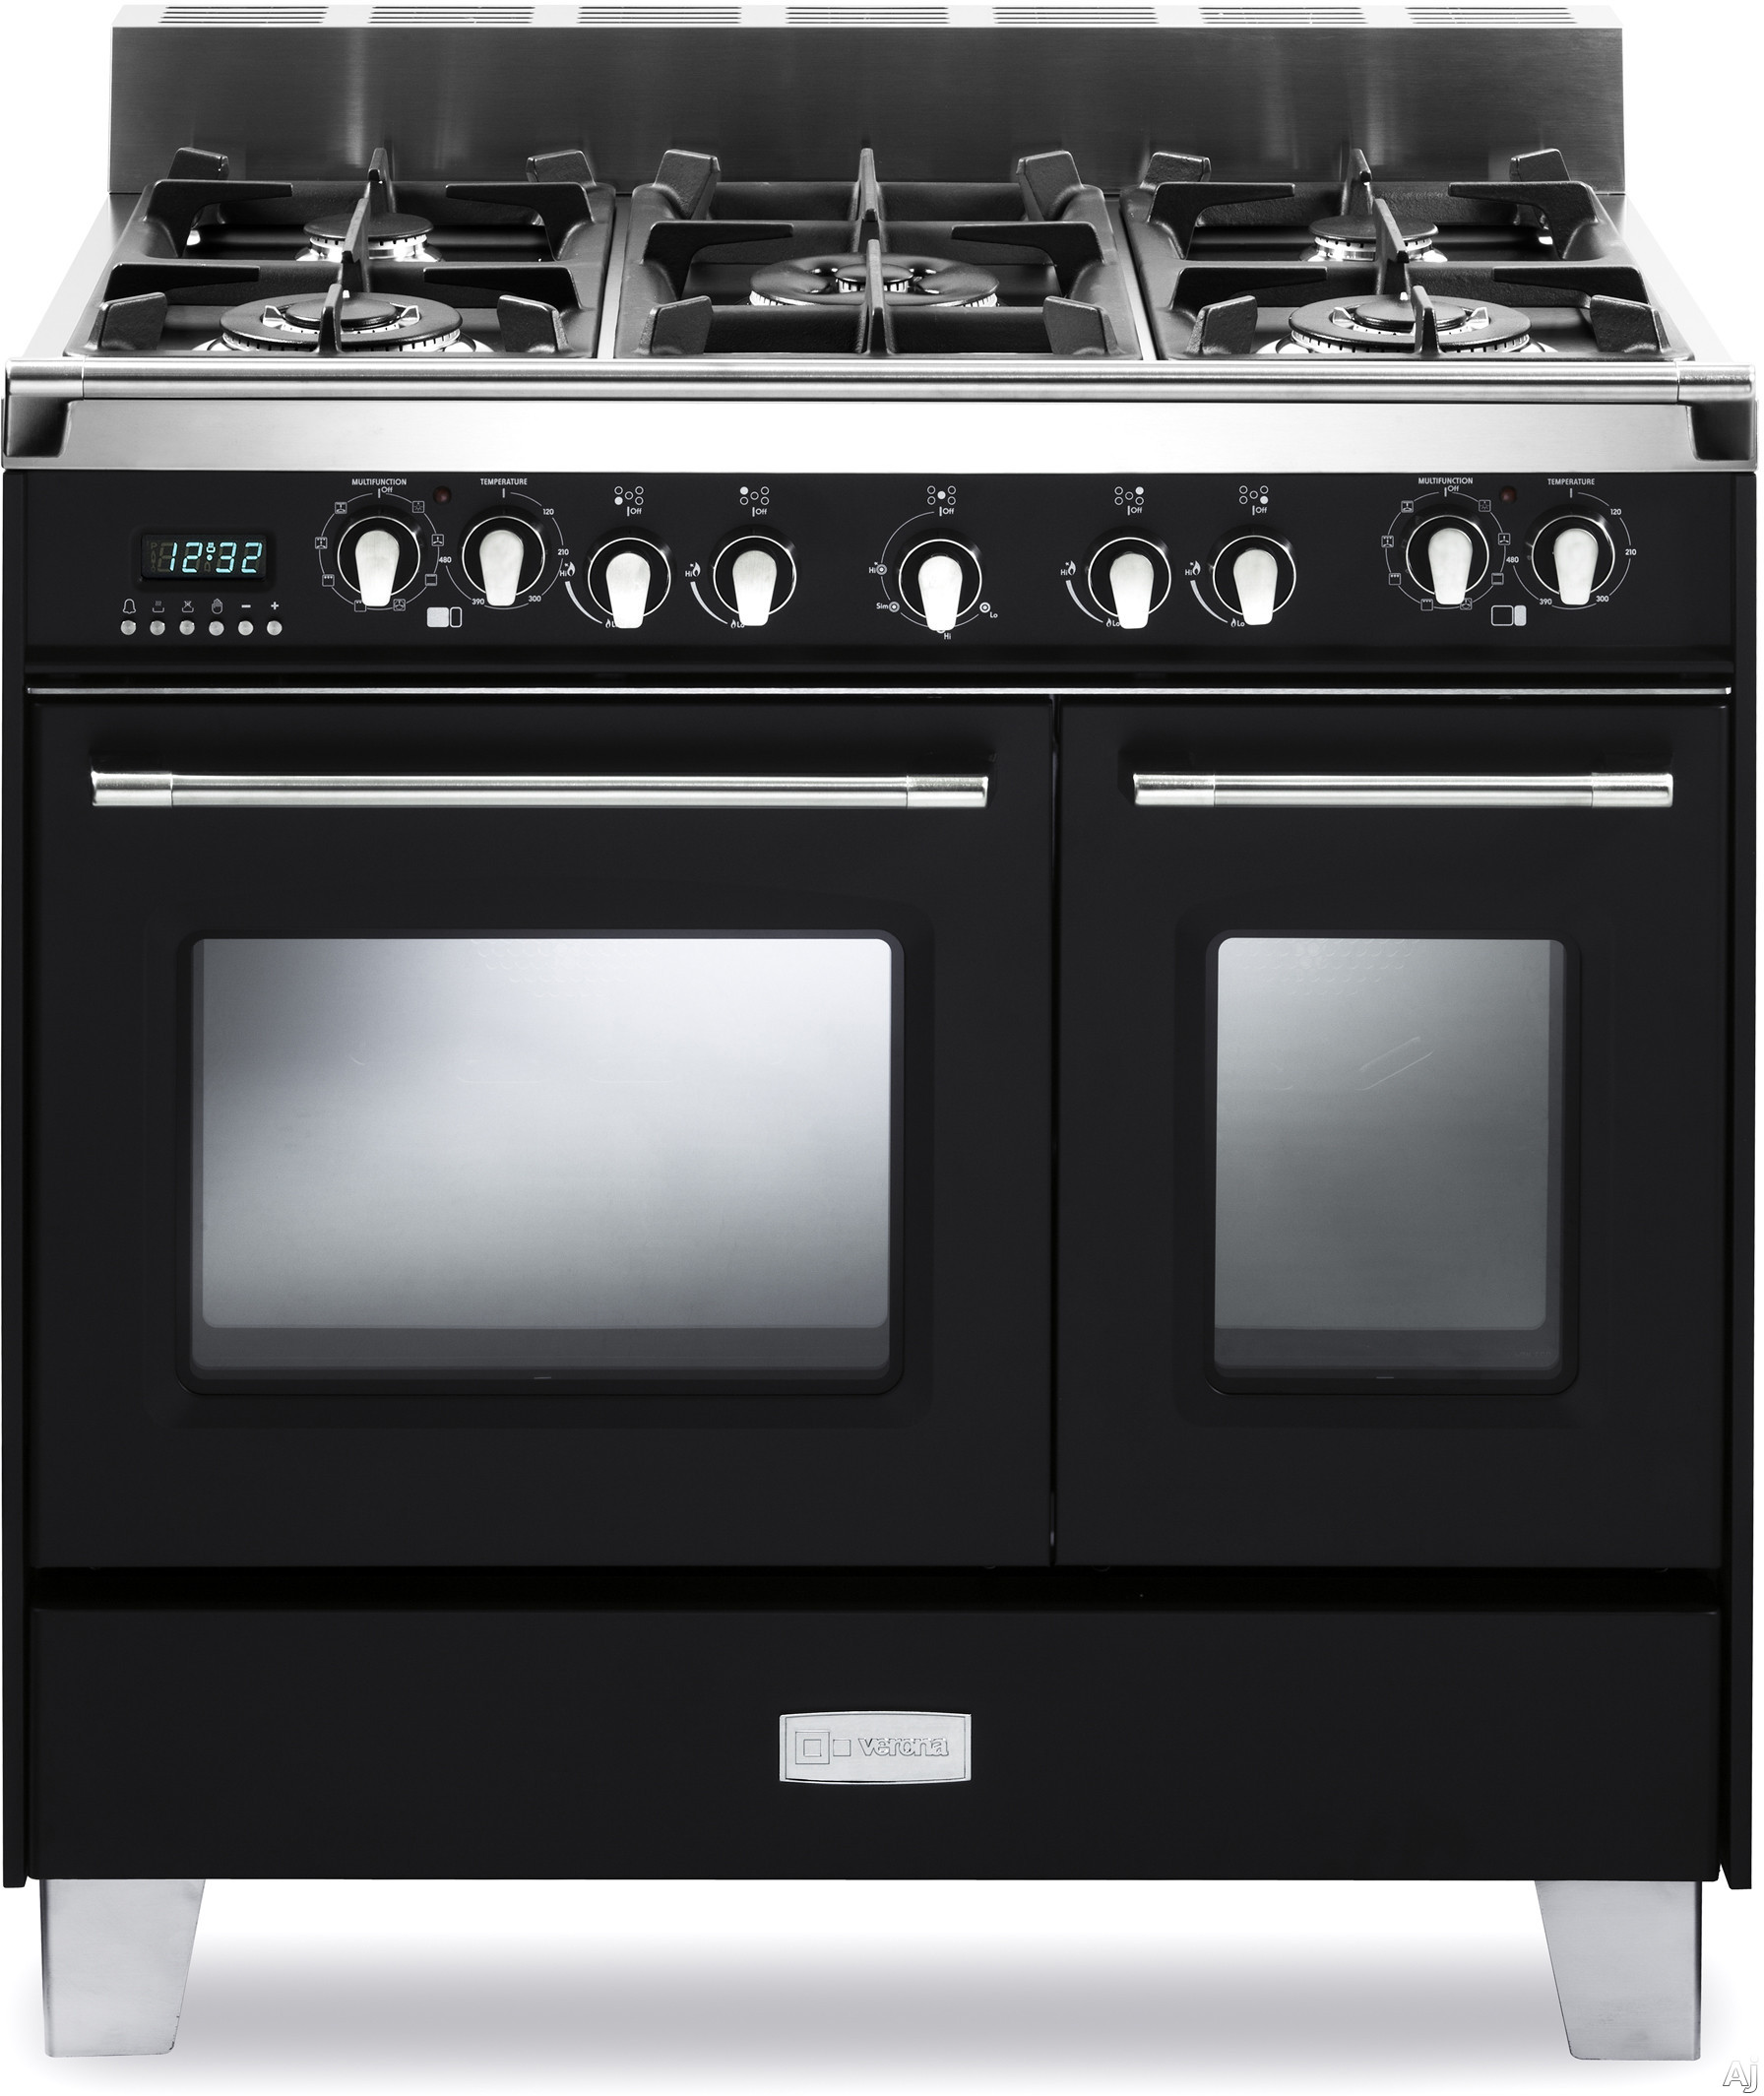 Verona Classic Series VCLFSGE365DE 36 Inch Pro Style Dual Fuel Range with 5 Sealed Burners 24 cu ft European Convection Main Oven Manual Clean Digital Clock Timer Glide Rack and Storage Drawer Matte Black